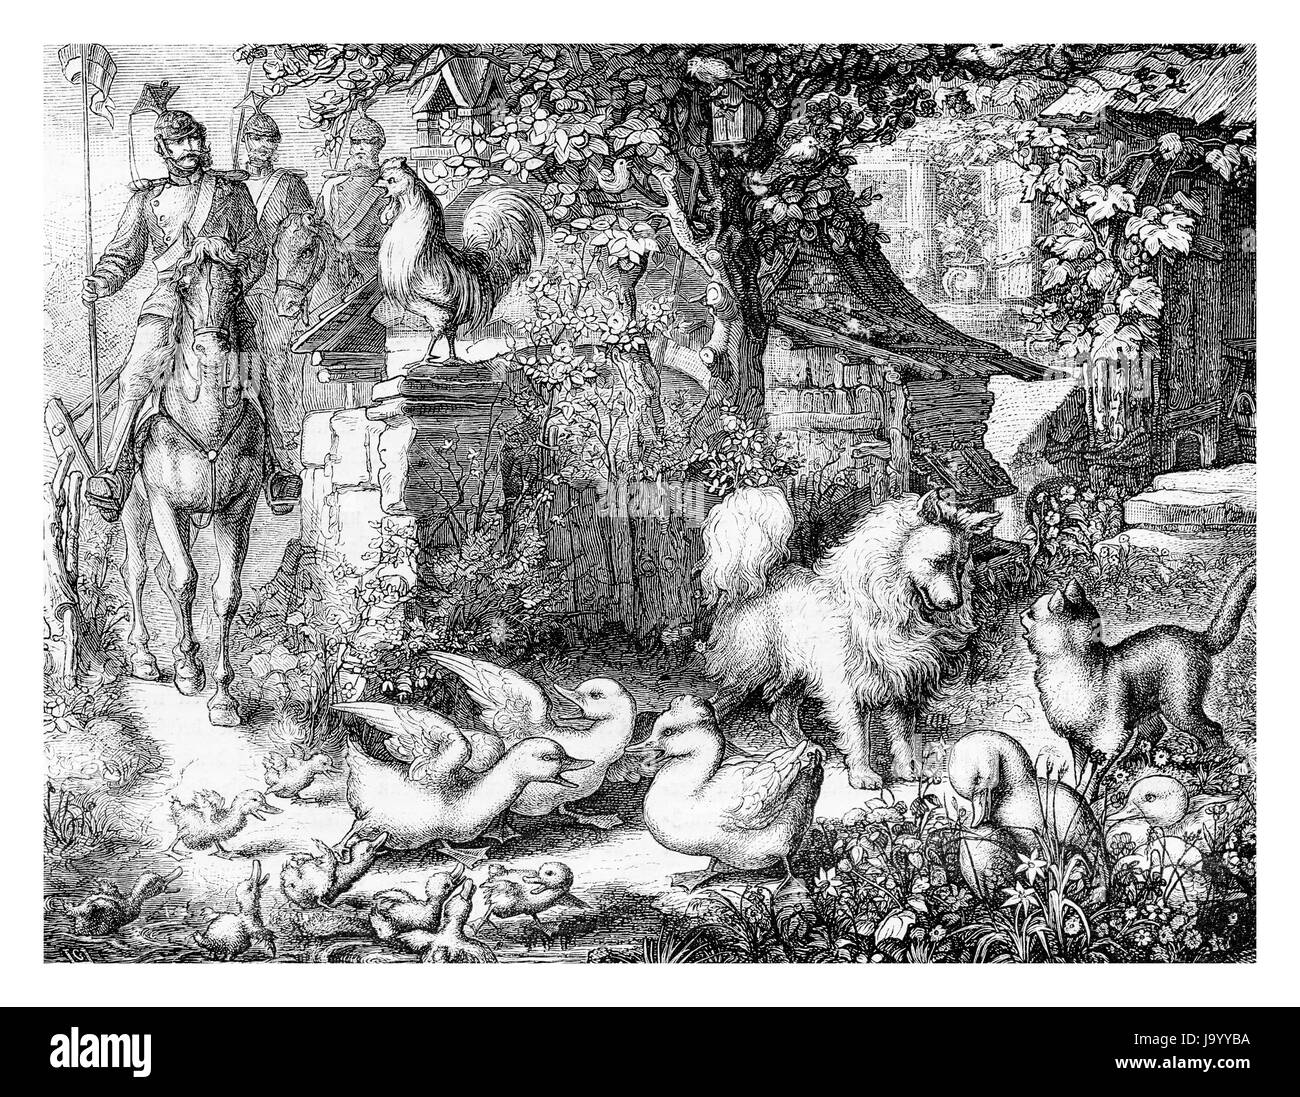 Soldiers are coming, creating havoc among the animals in the farmyard, engraving from XIX century - Stock Image